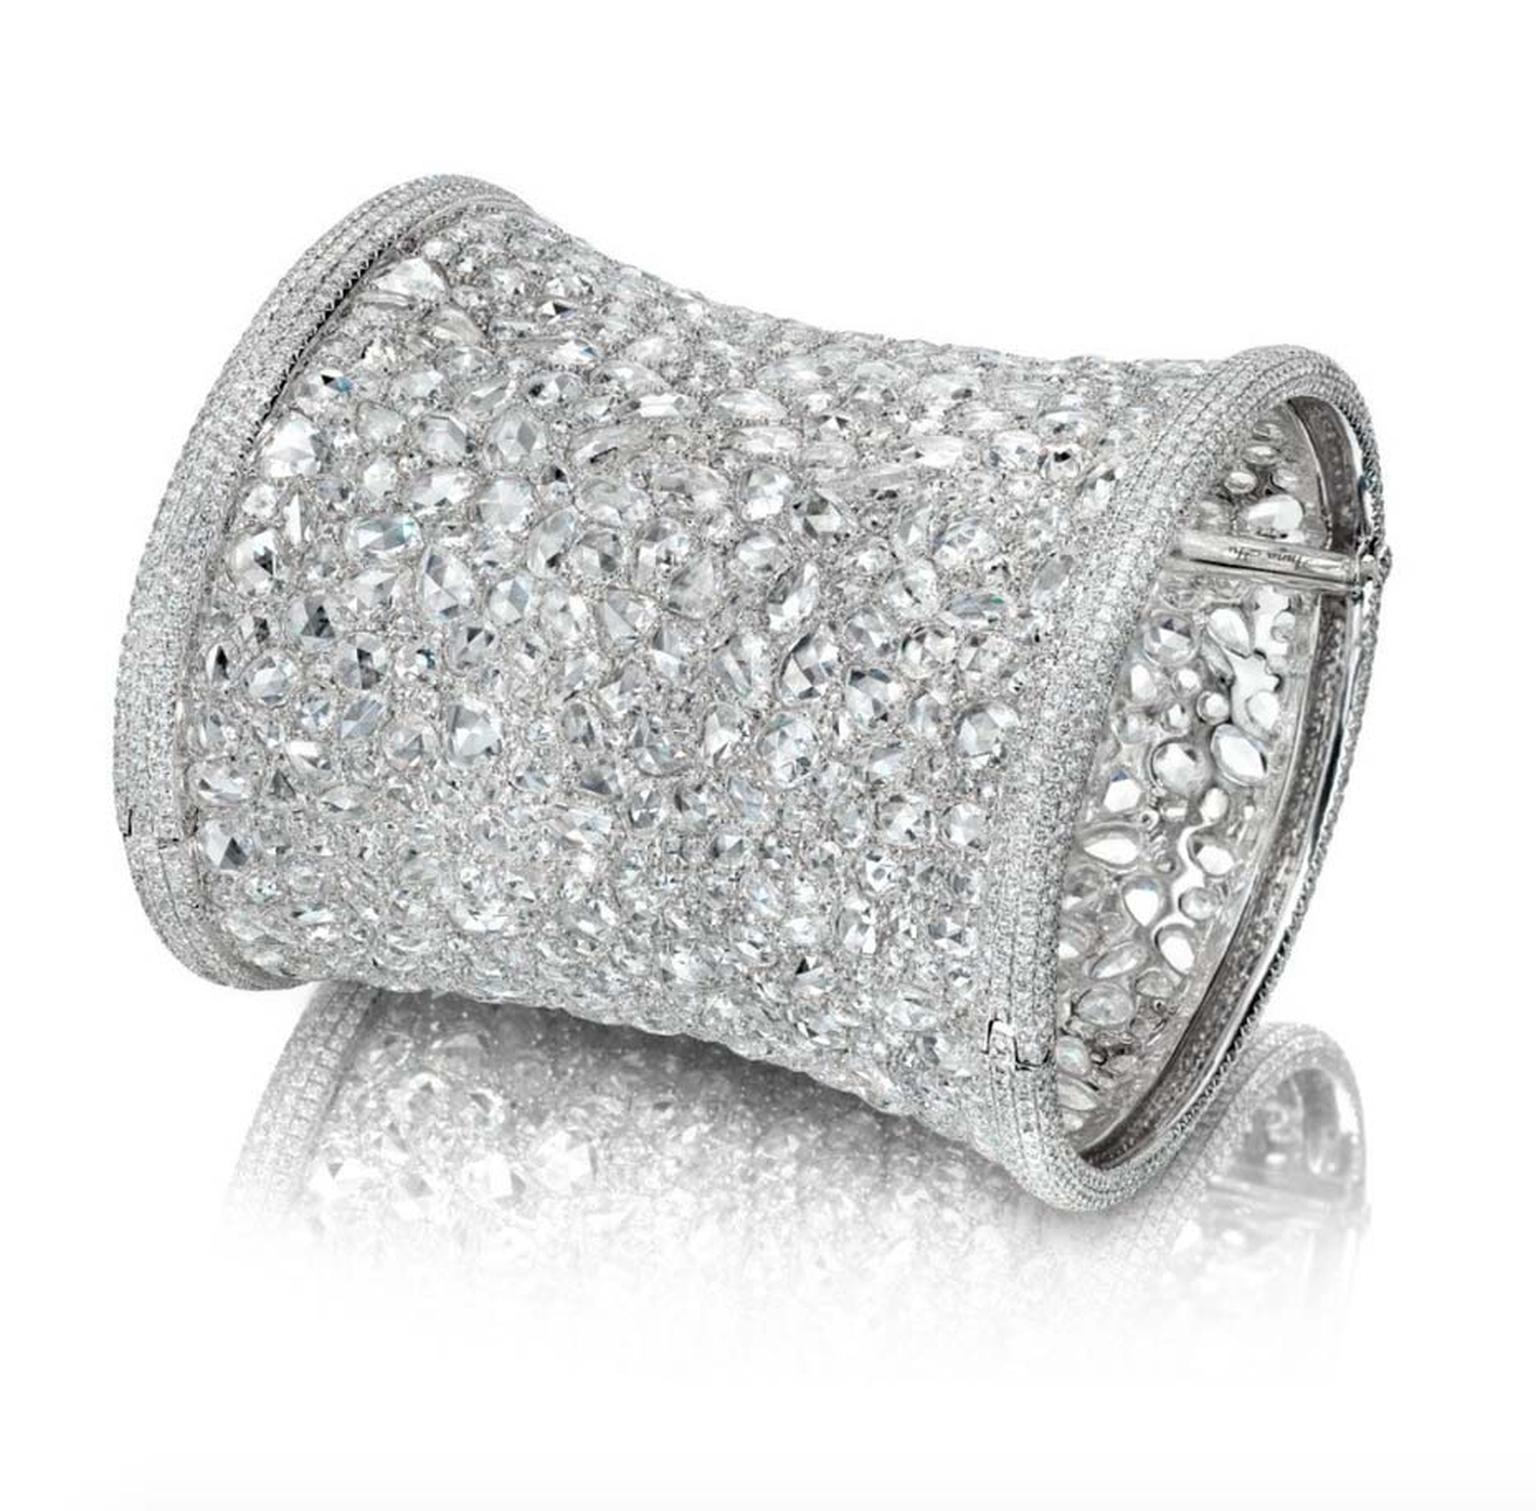 Anna Hu's Hearst of Winter high jewellery cuff, as worn by Gwyneth Paltrow to the 2012 Oscars, is made of 2,368 rose-cut, round brilliant diamonds and is valued at $1 million.